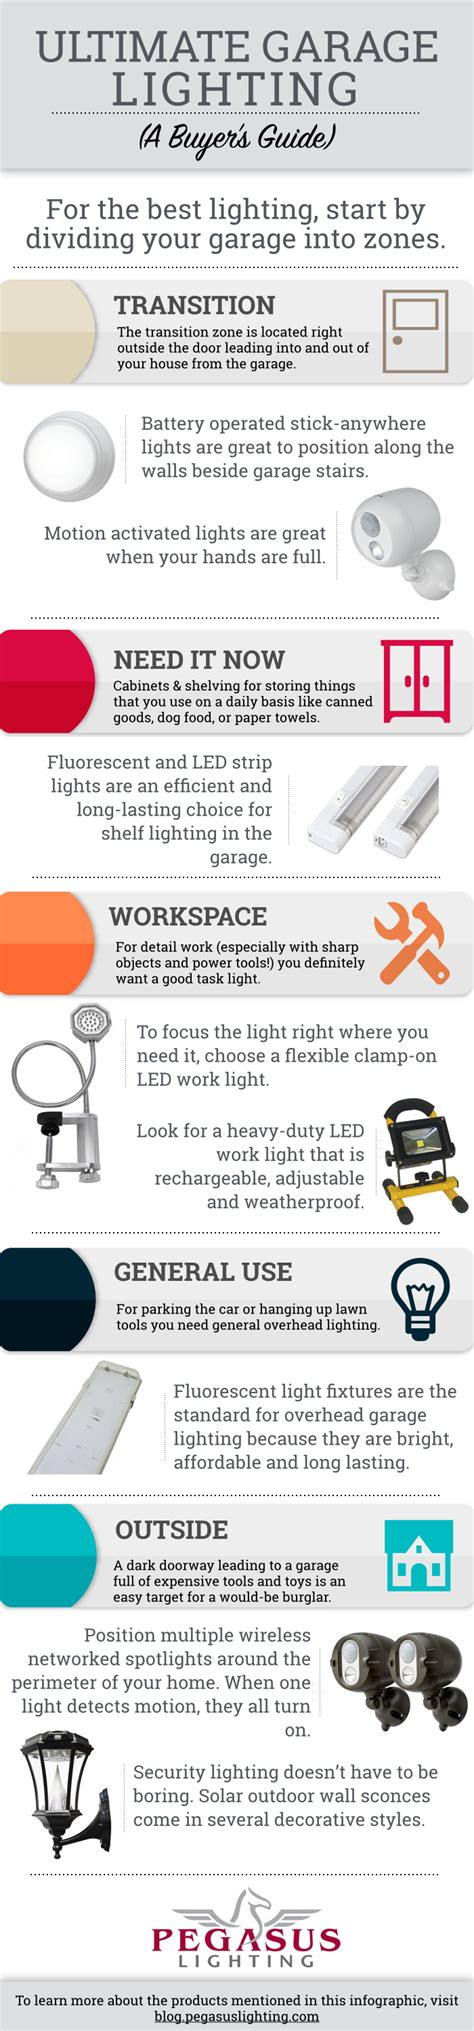 ultimate guide  garage lighting  infographic